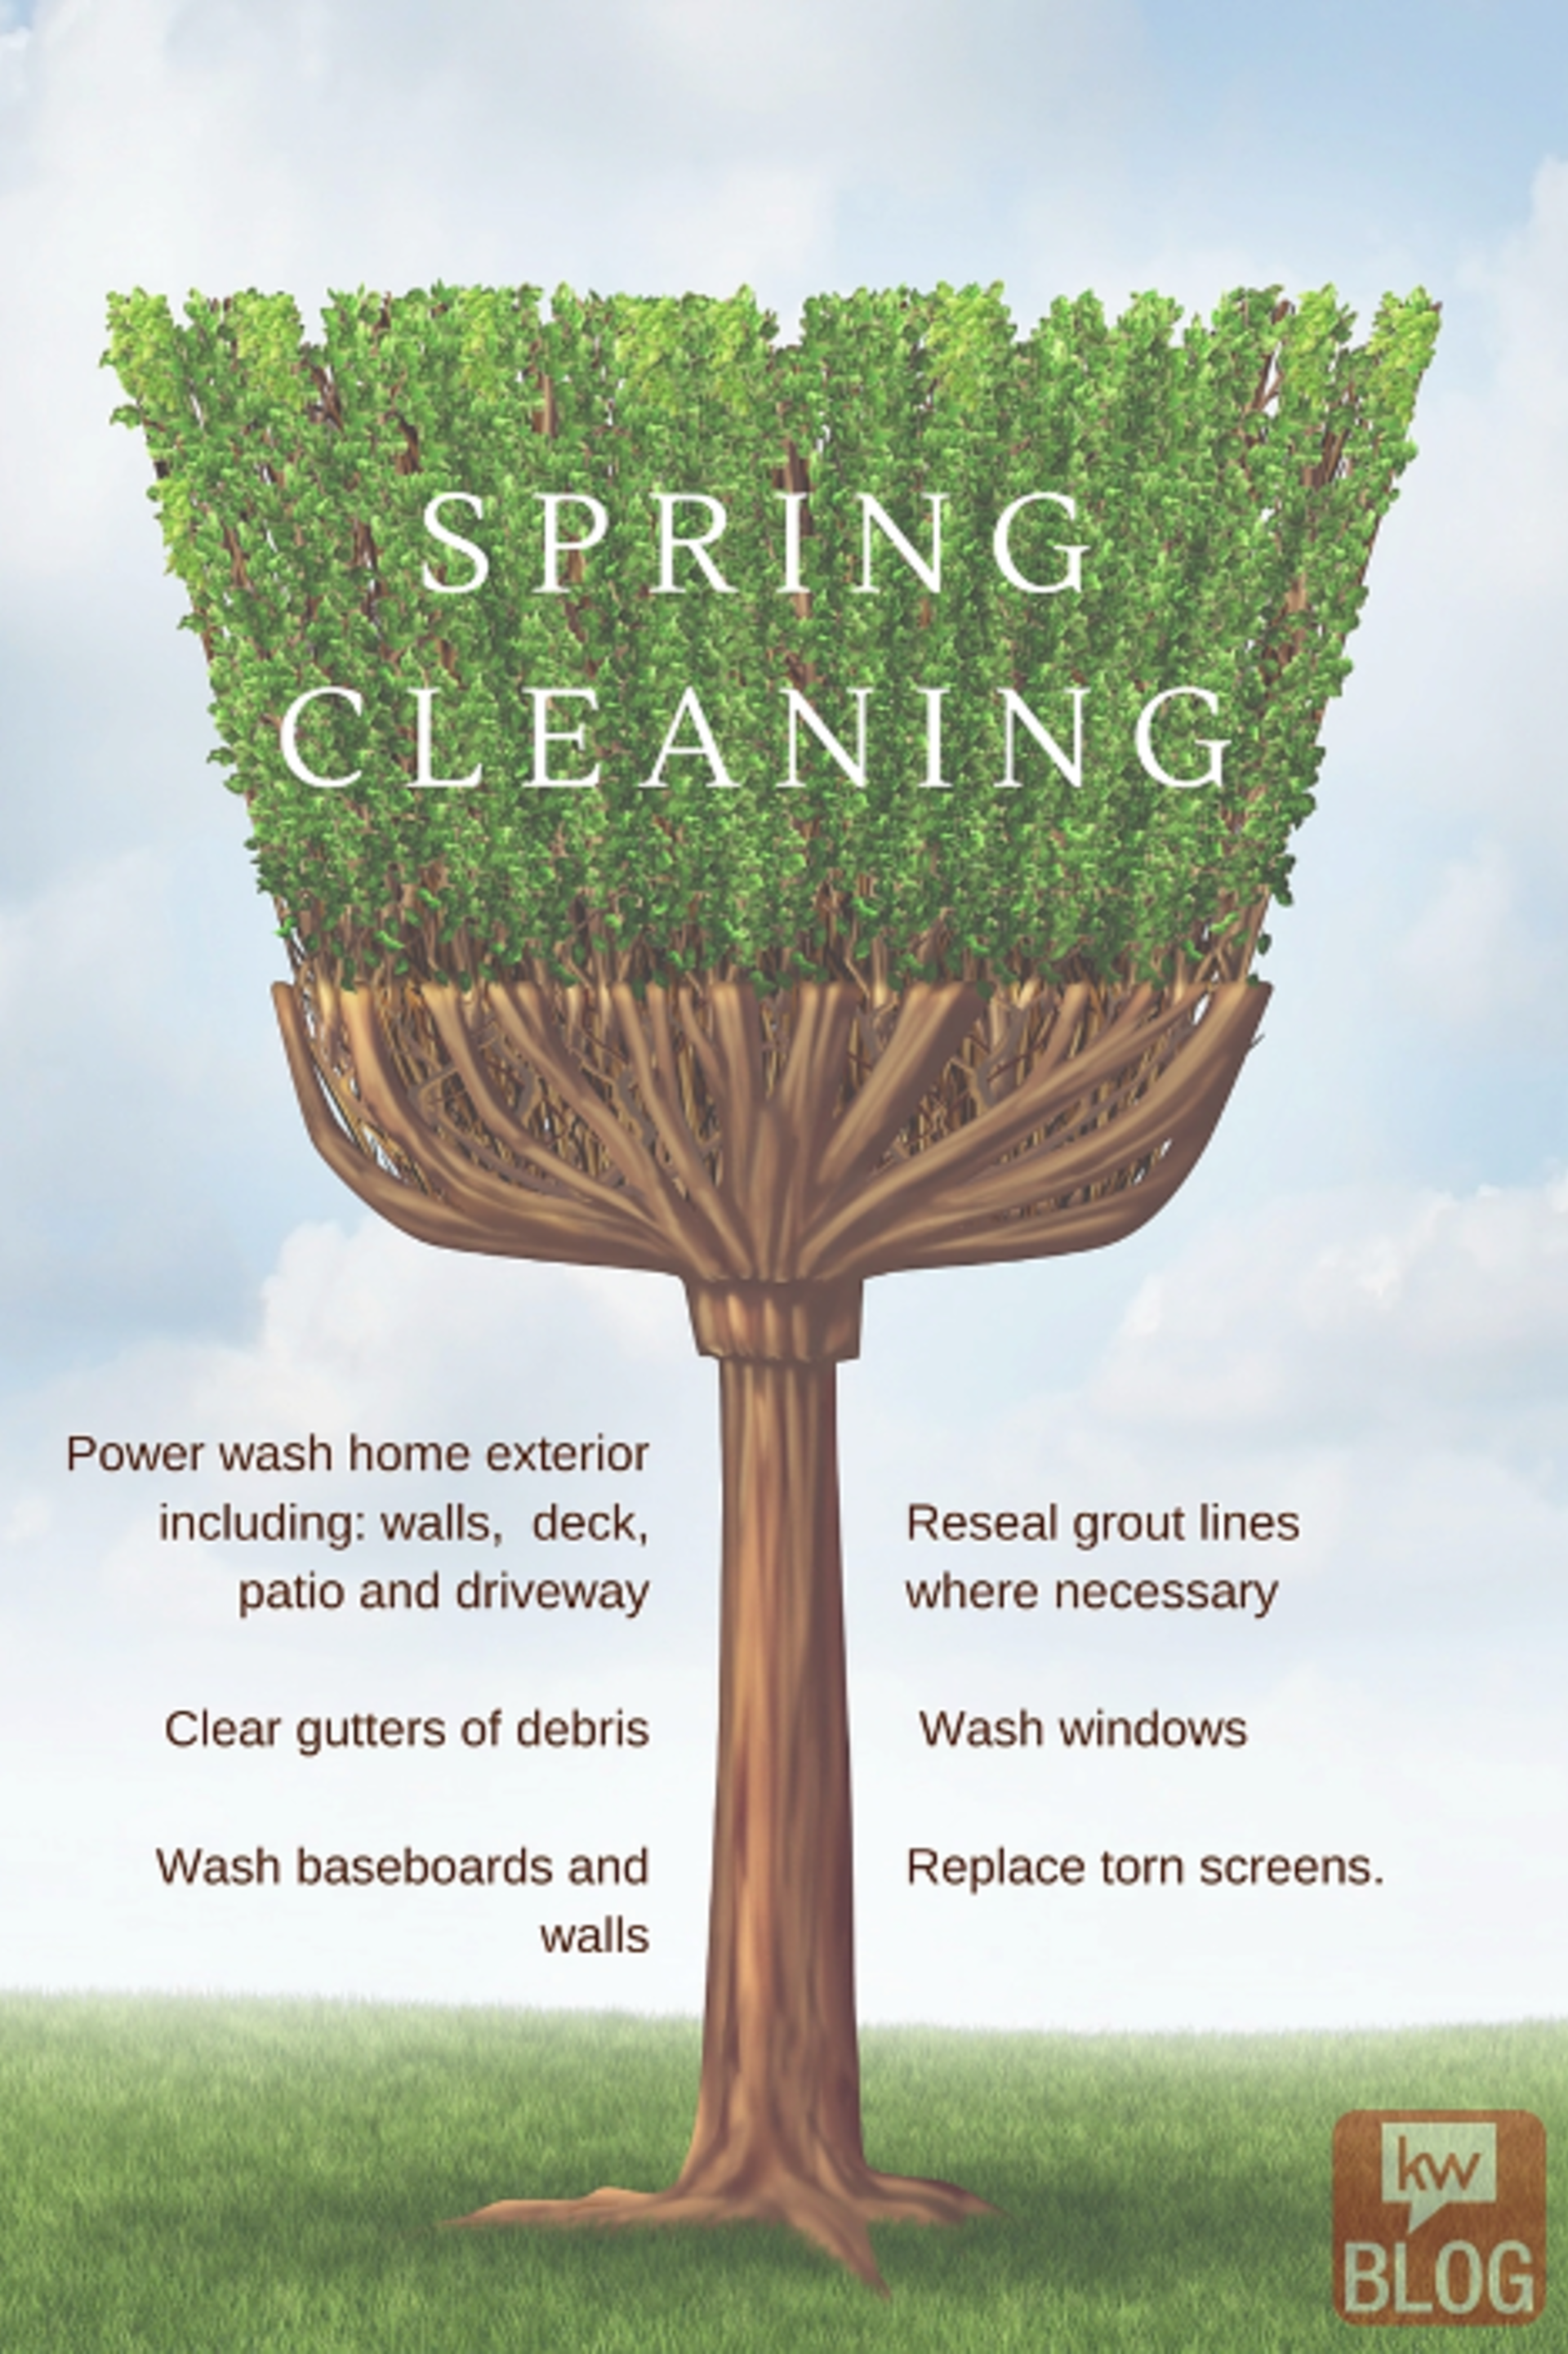 Spring Cleaning Can Increase Property Values